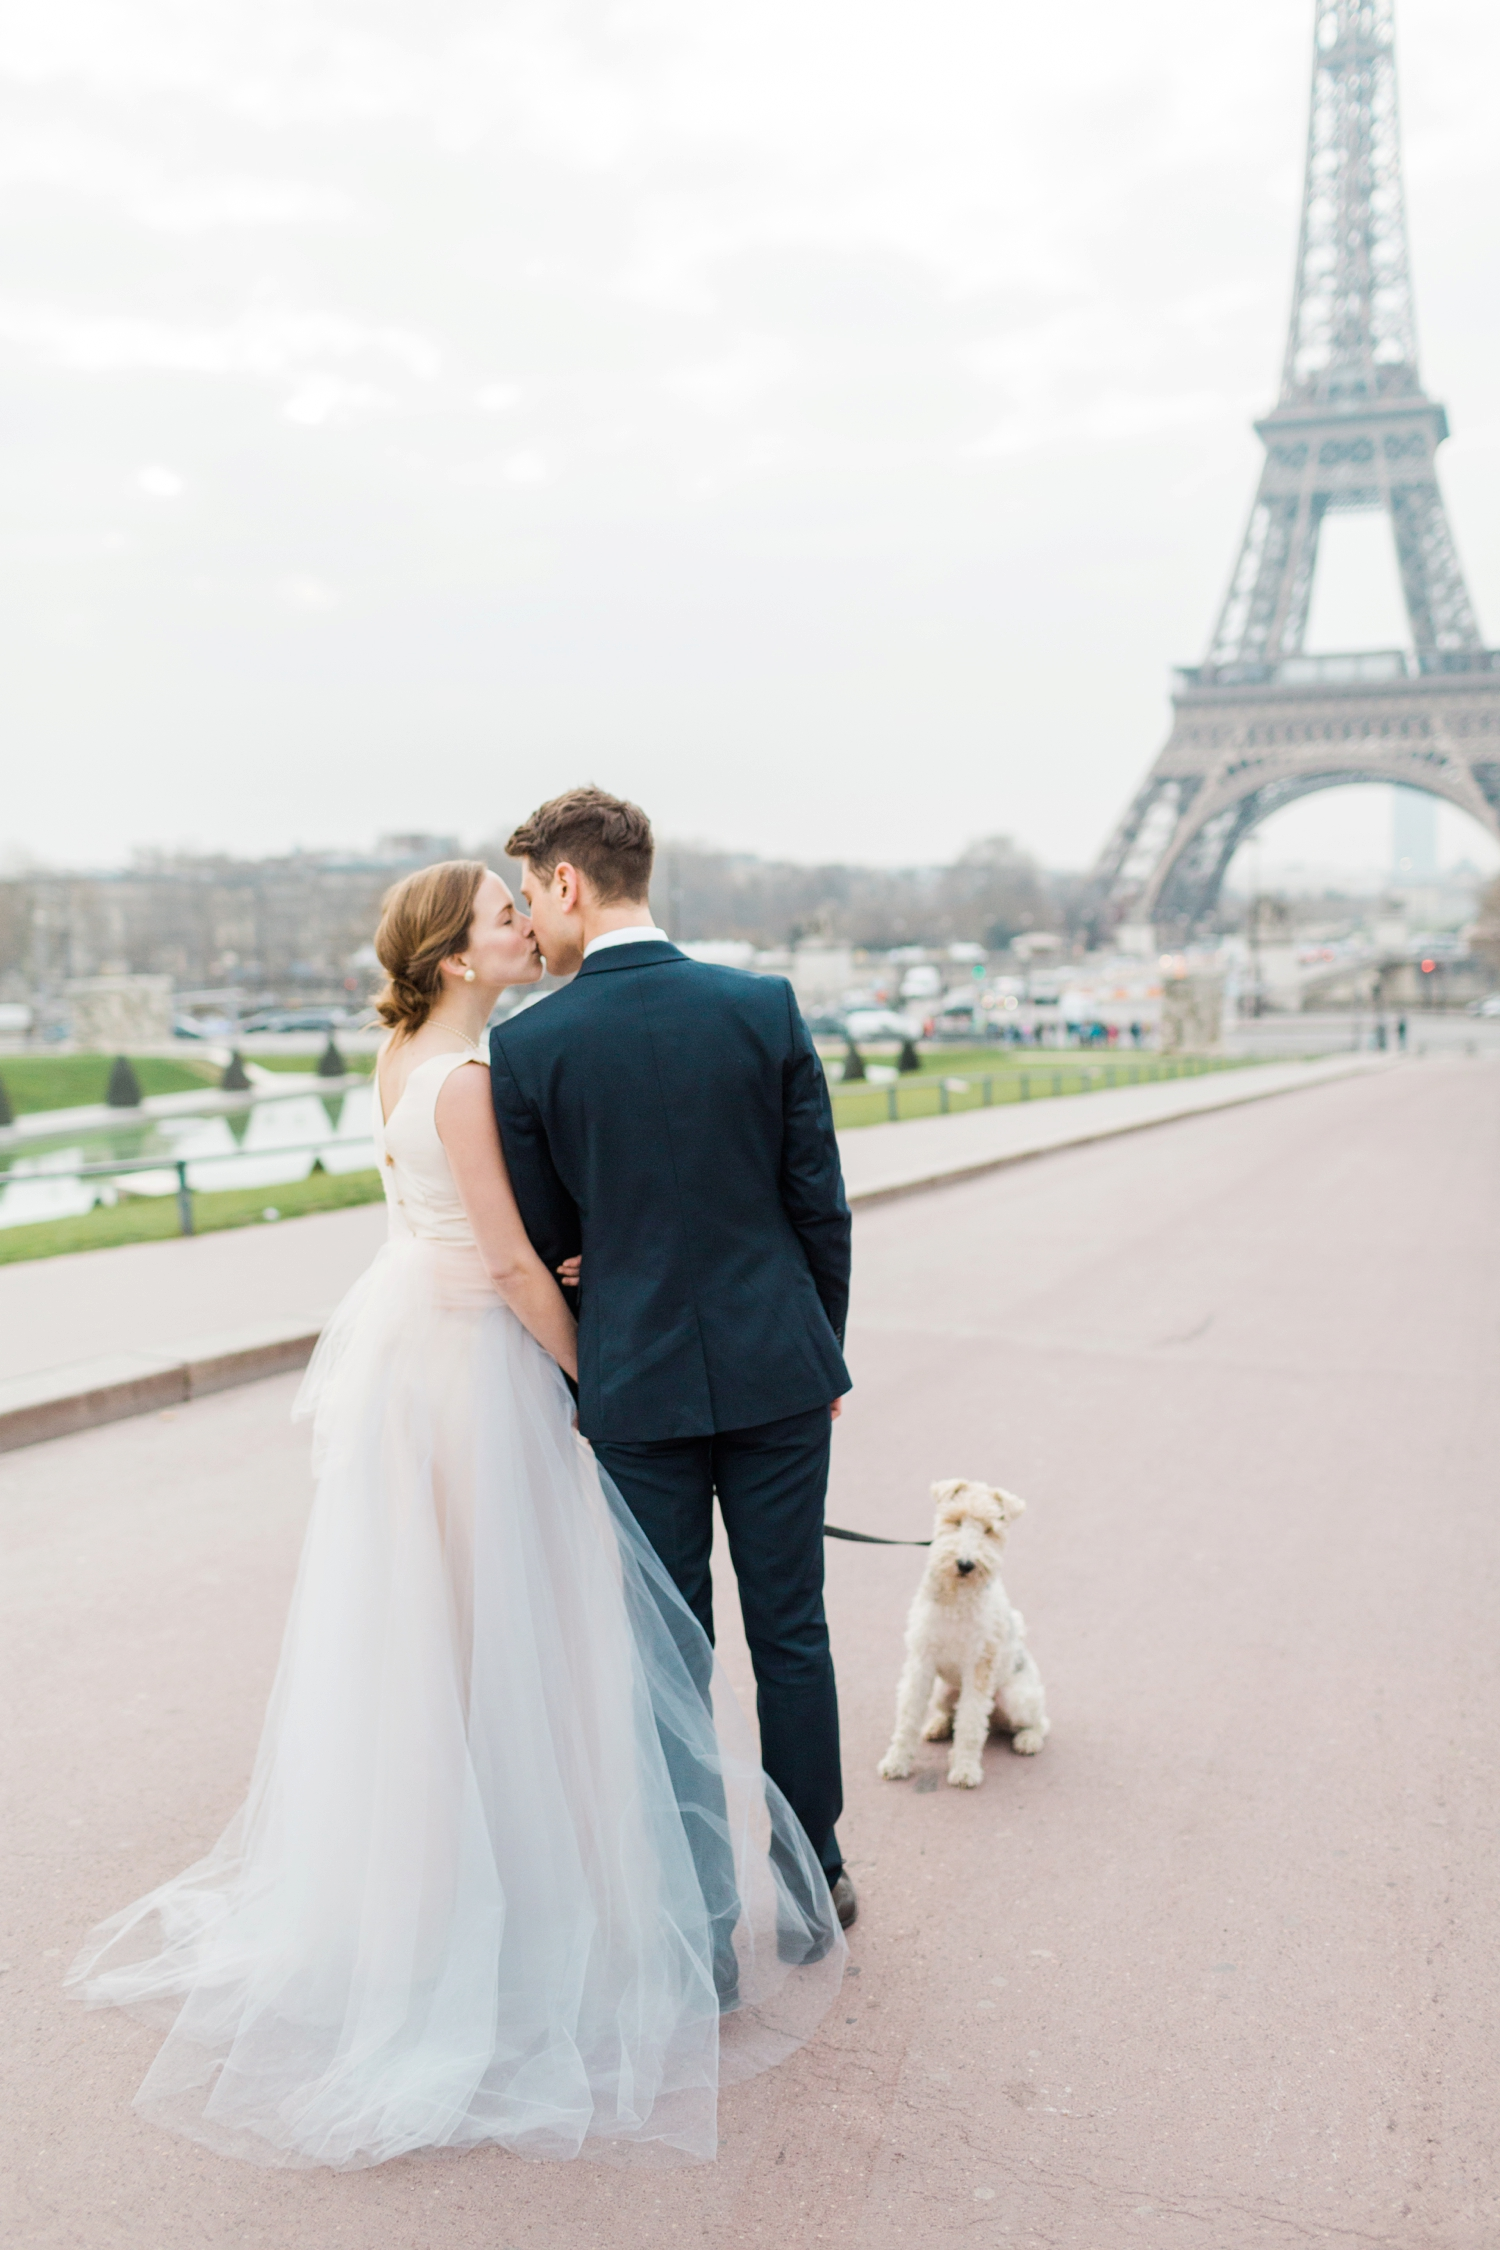 Paris-France-Wedding-Photography-Chloe-Luka-Photography_7673.jpg